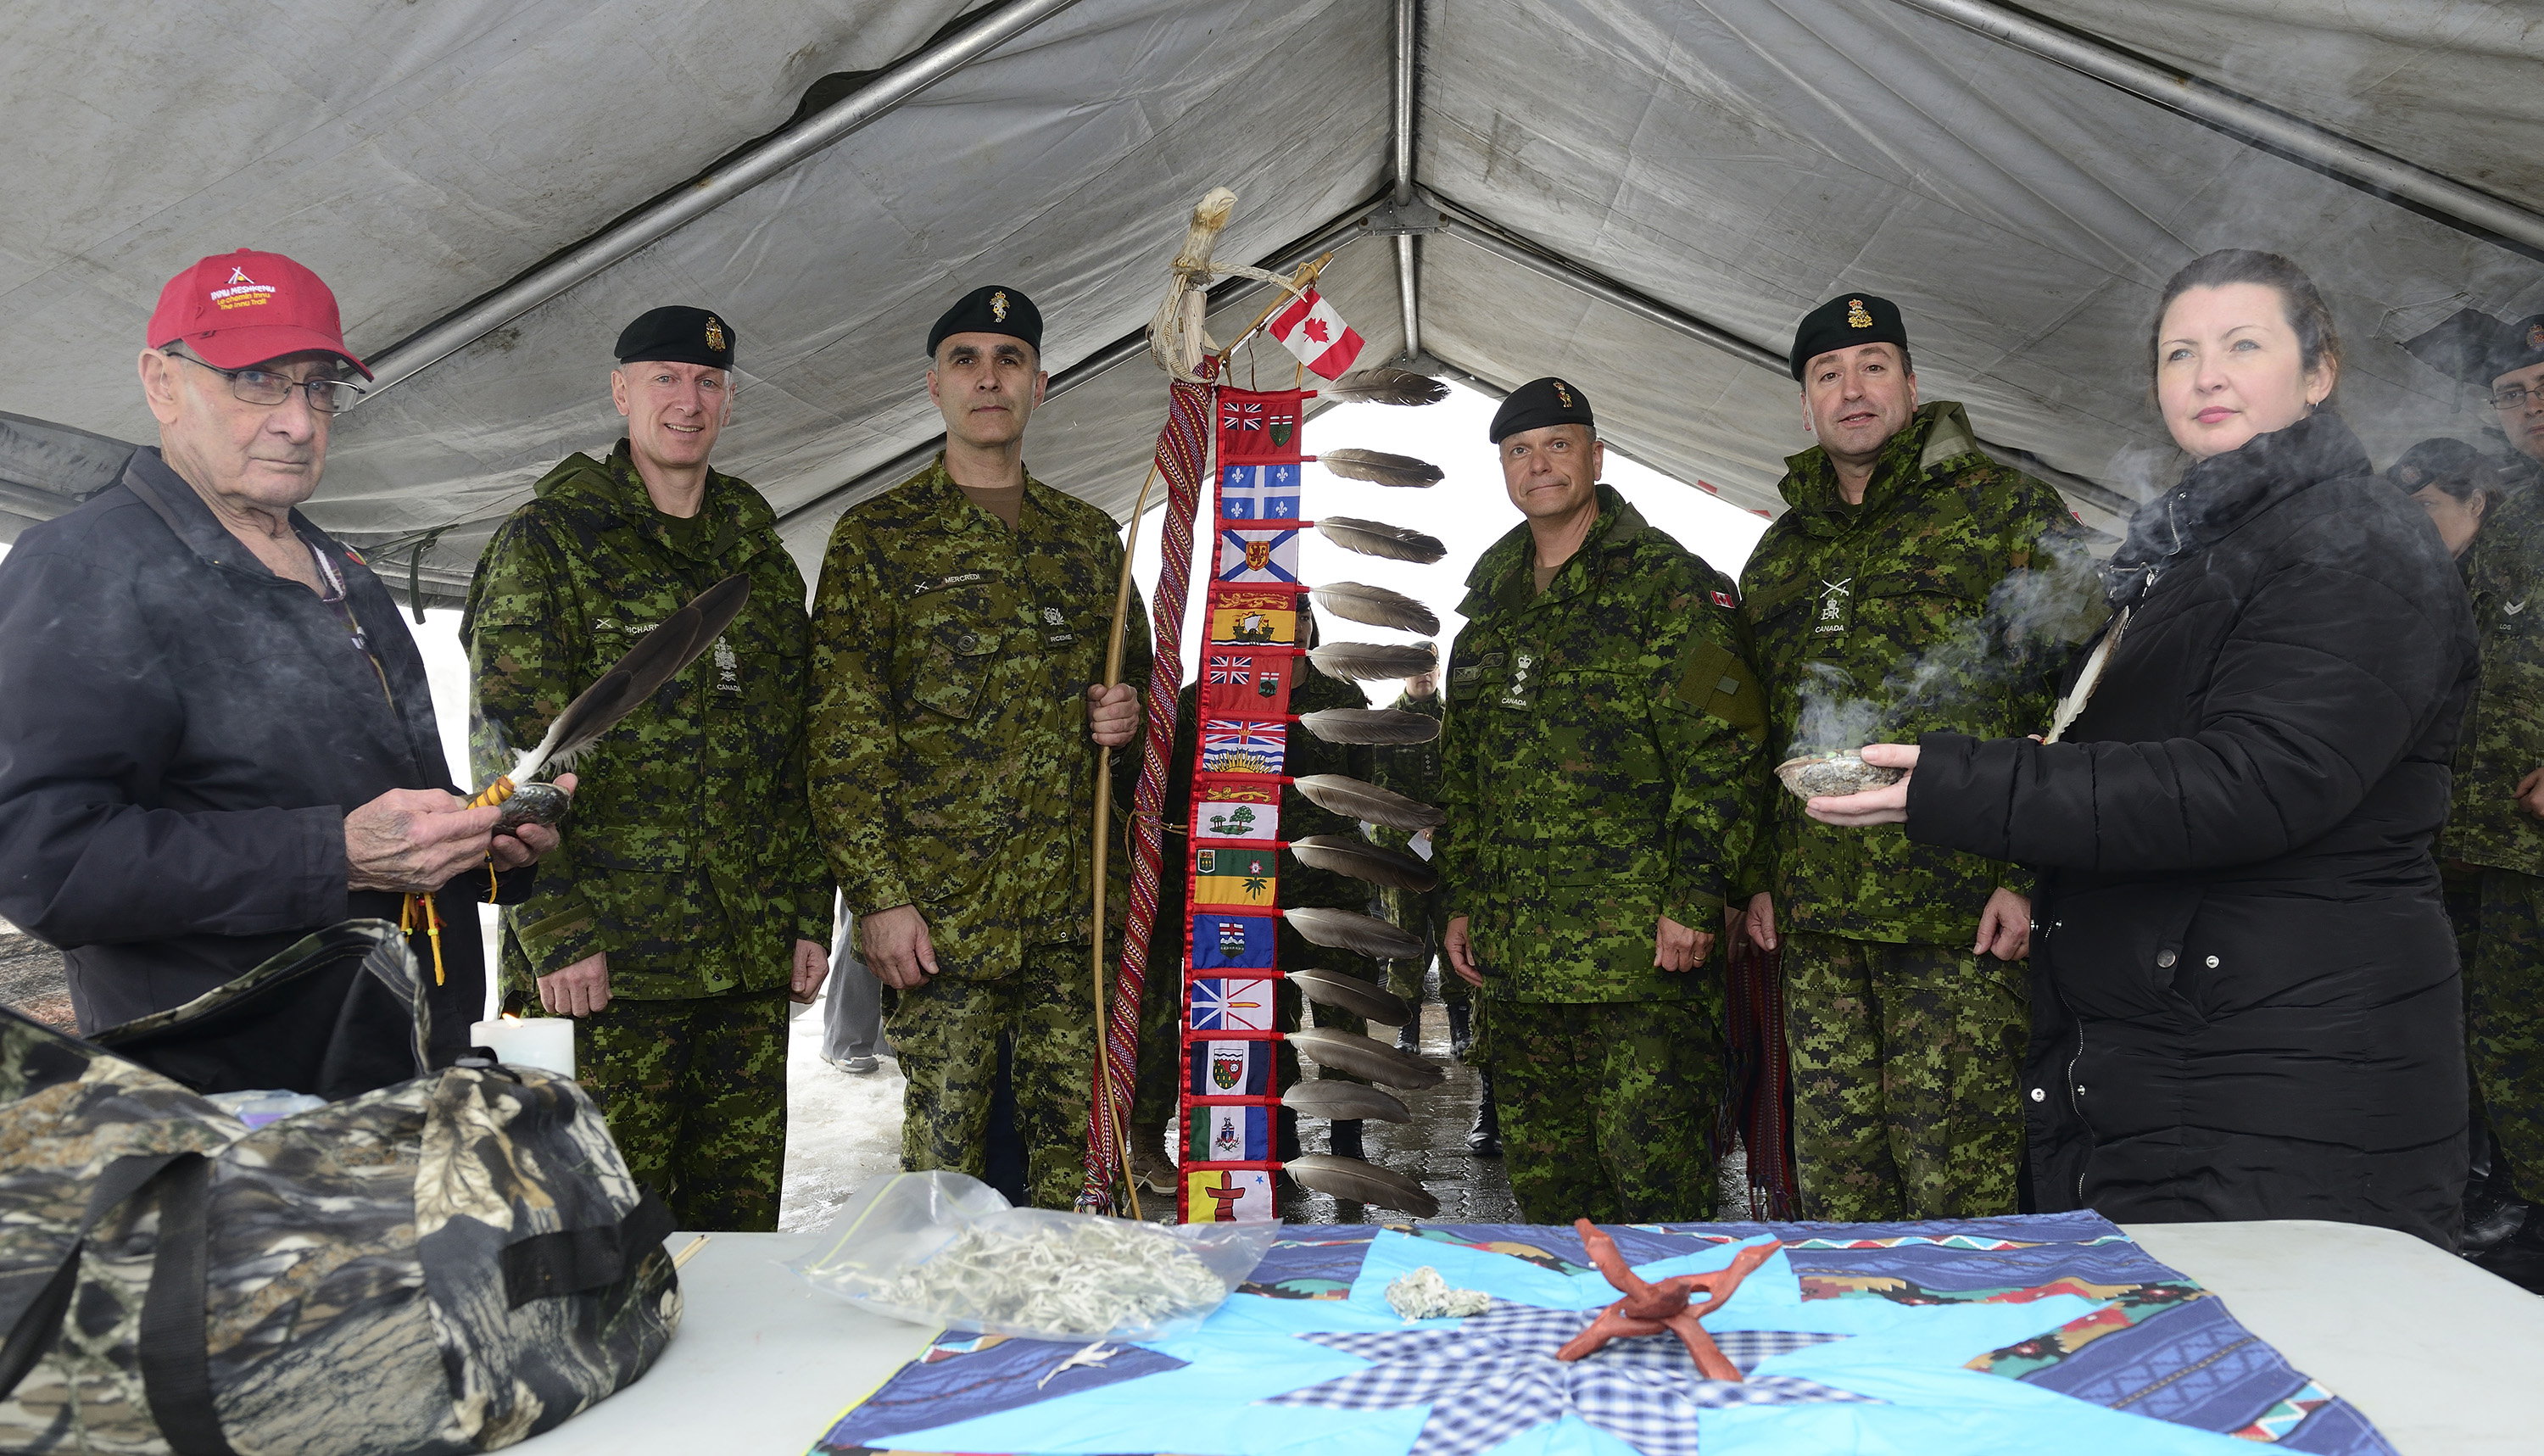 Five men - four of them dressed in camouflage army uniforms - and a woman stand together inside of a tent holding and displaying traditional Aboriginal ceremonial objects.